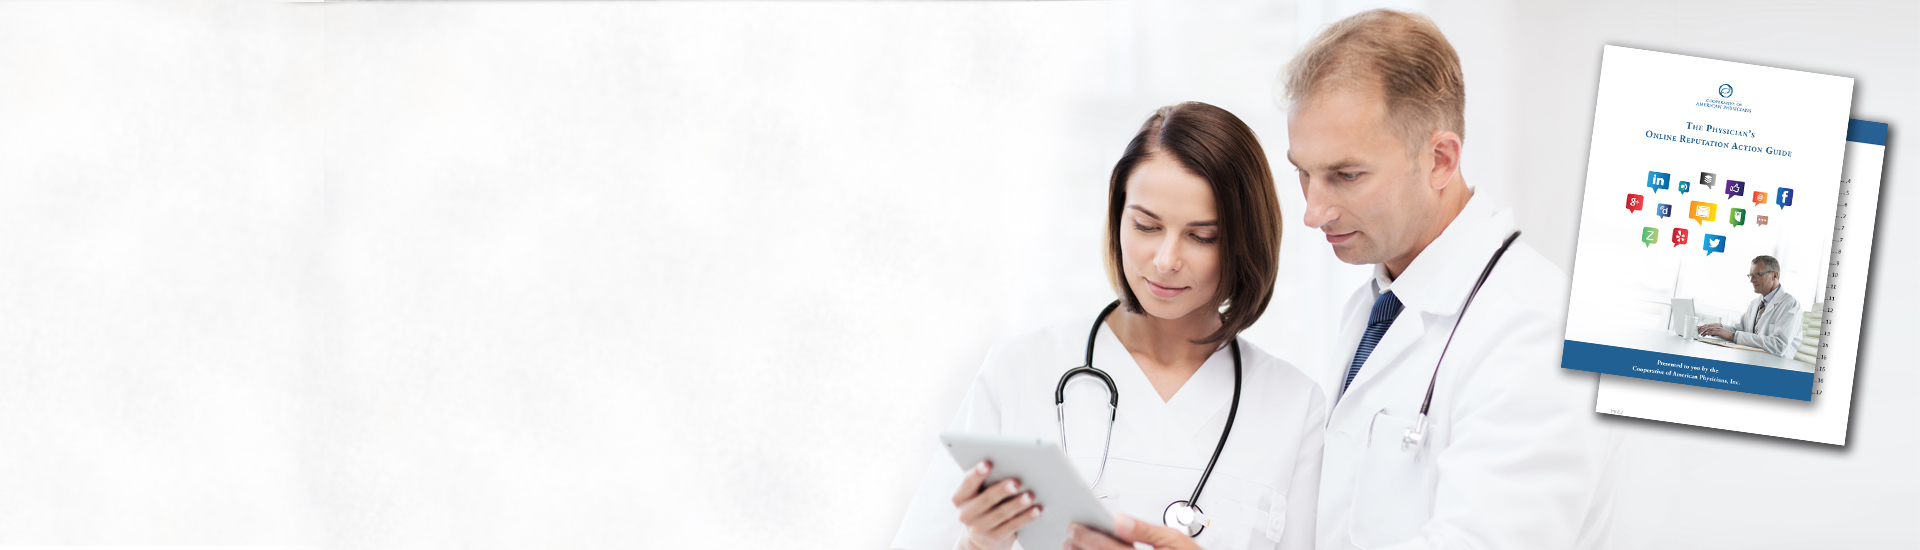 physicians with practice guides